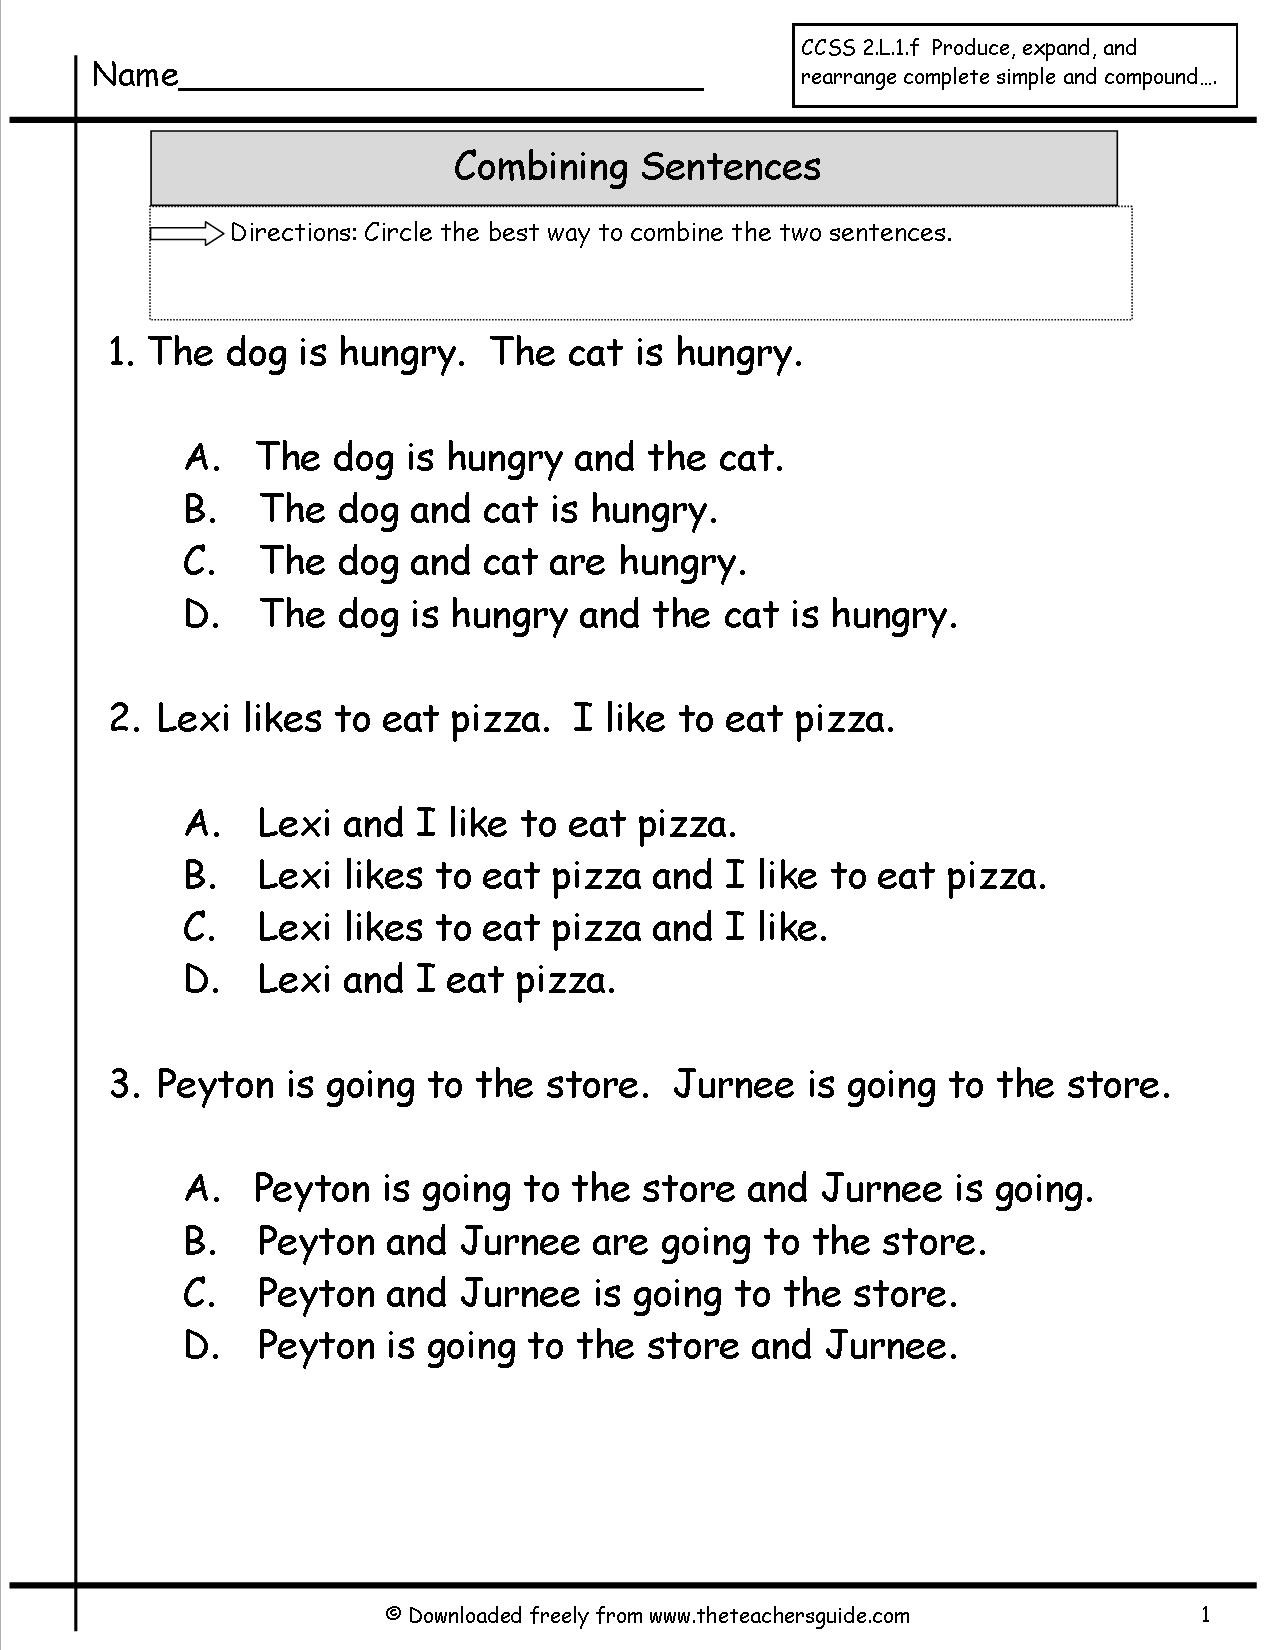 Combining Sentences Worksheet 5th Grade Types Sentences Worksheets Grade 1